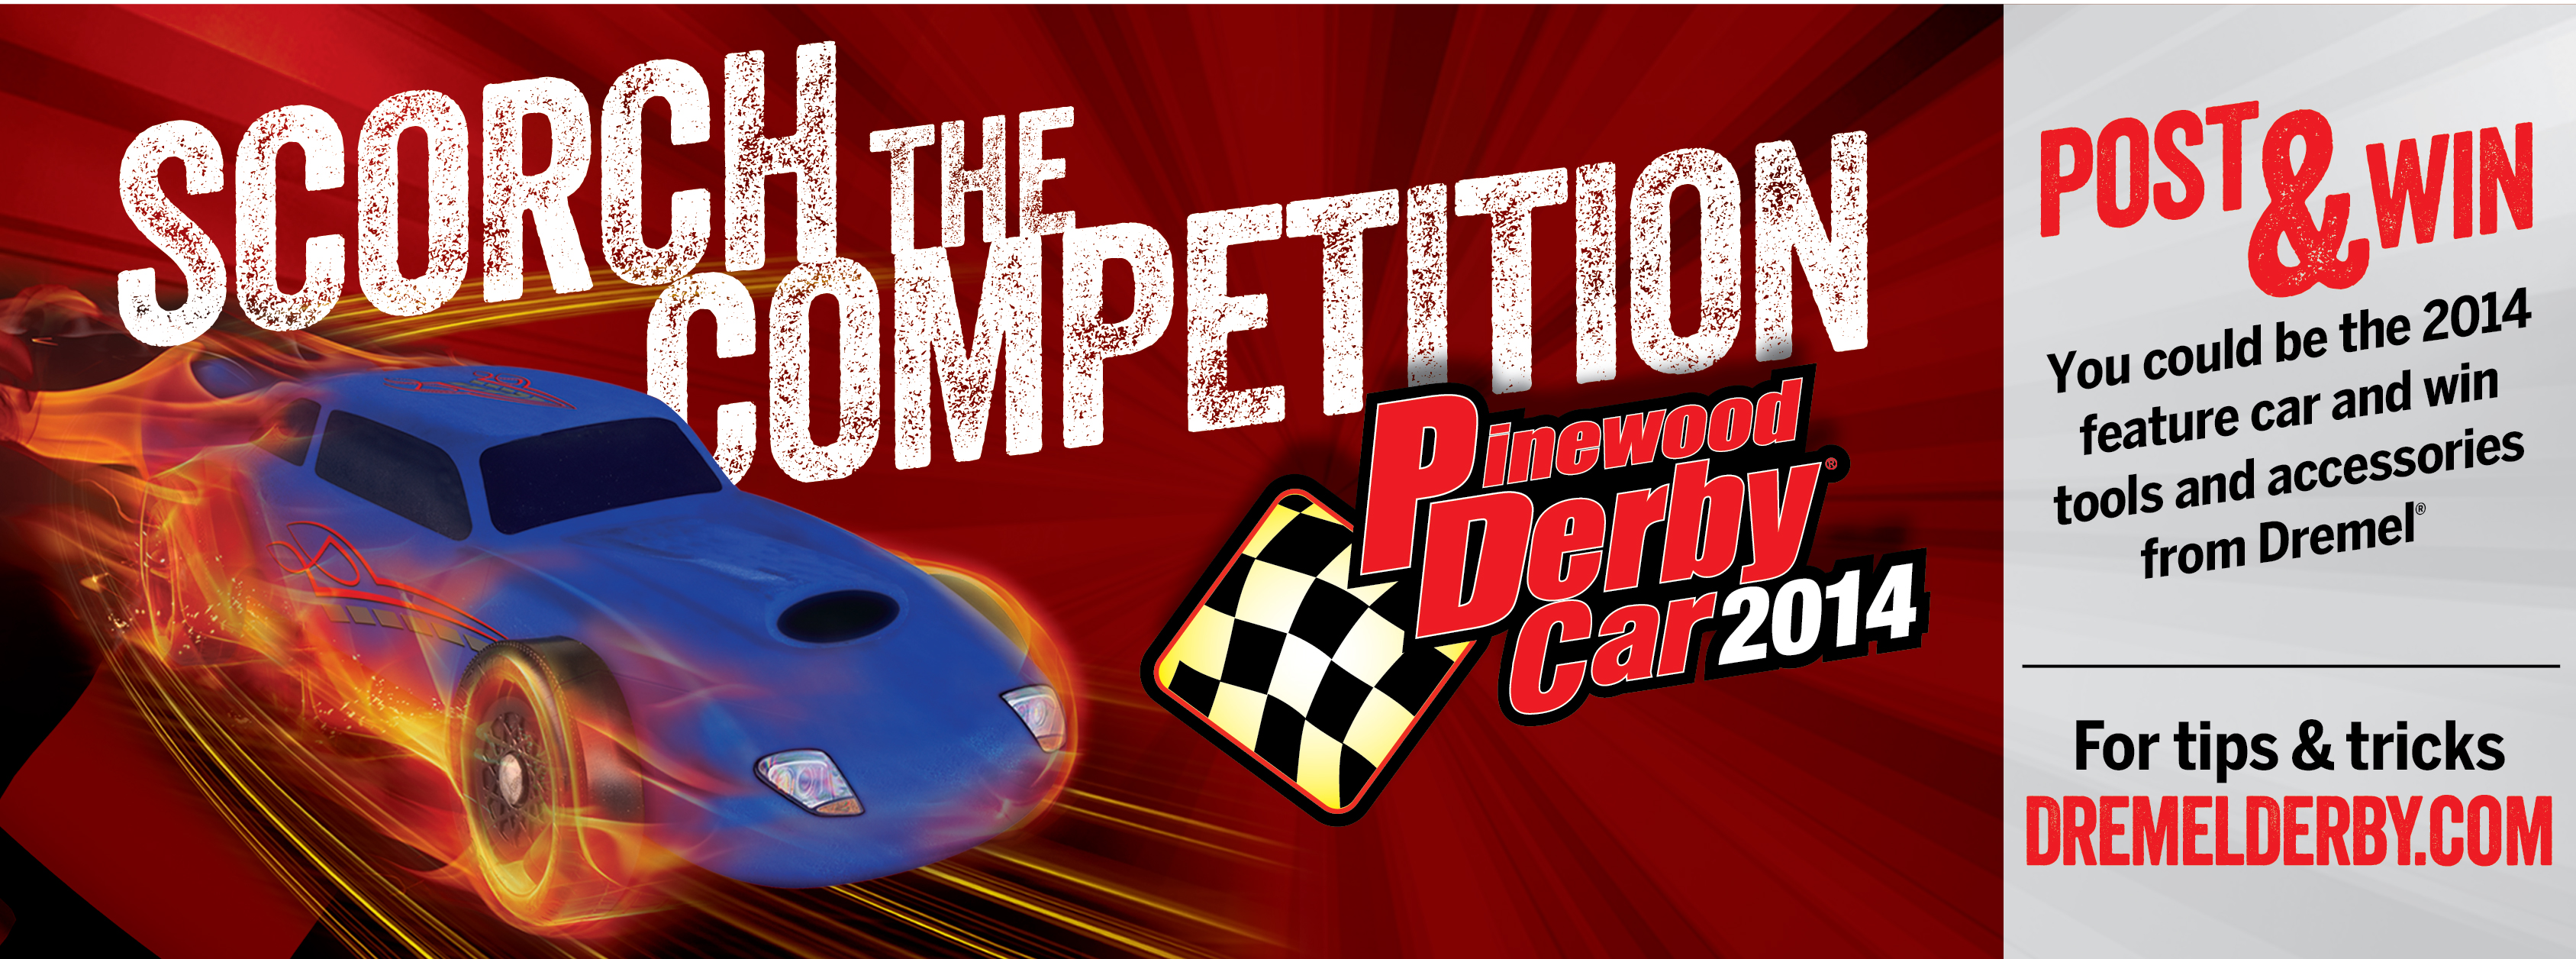 Scorch the competition in the Dremel Pinewood Derby® Days